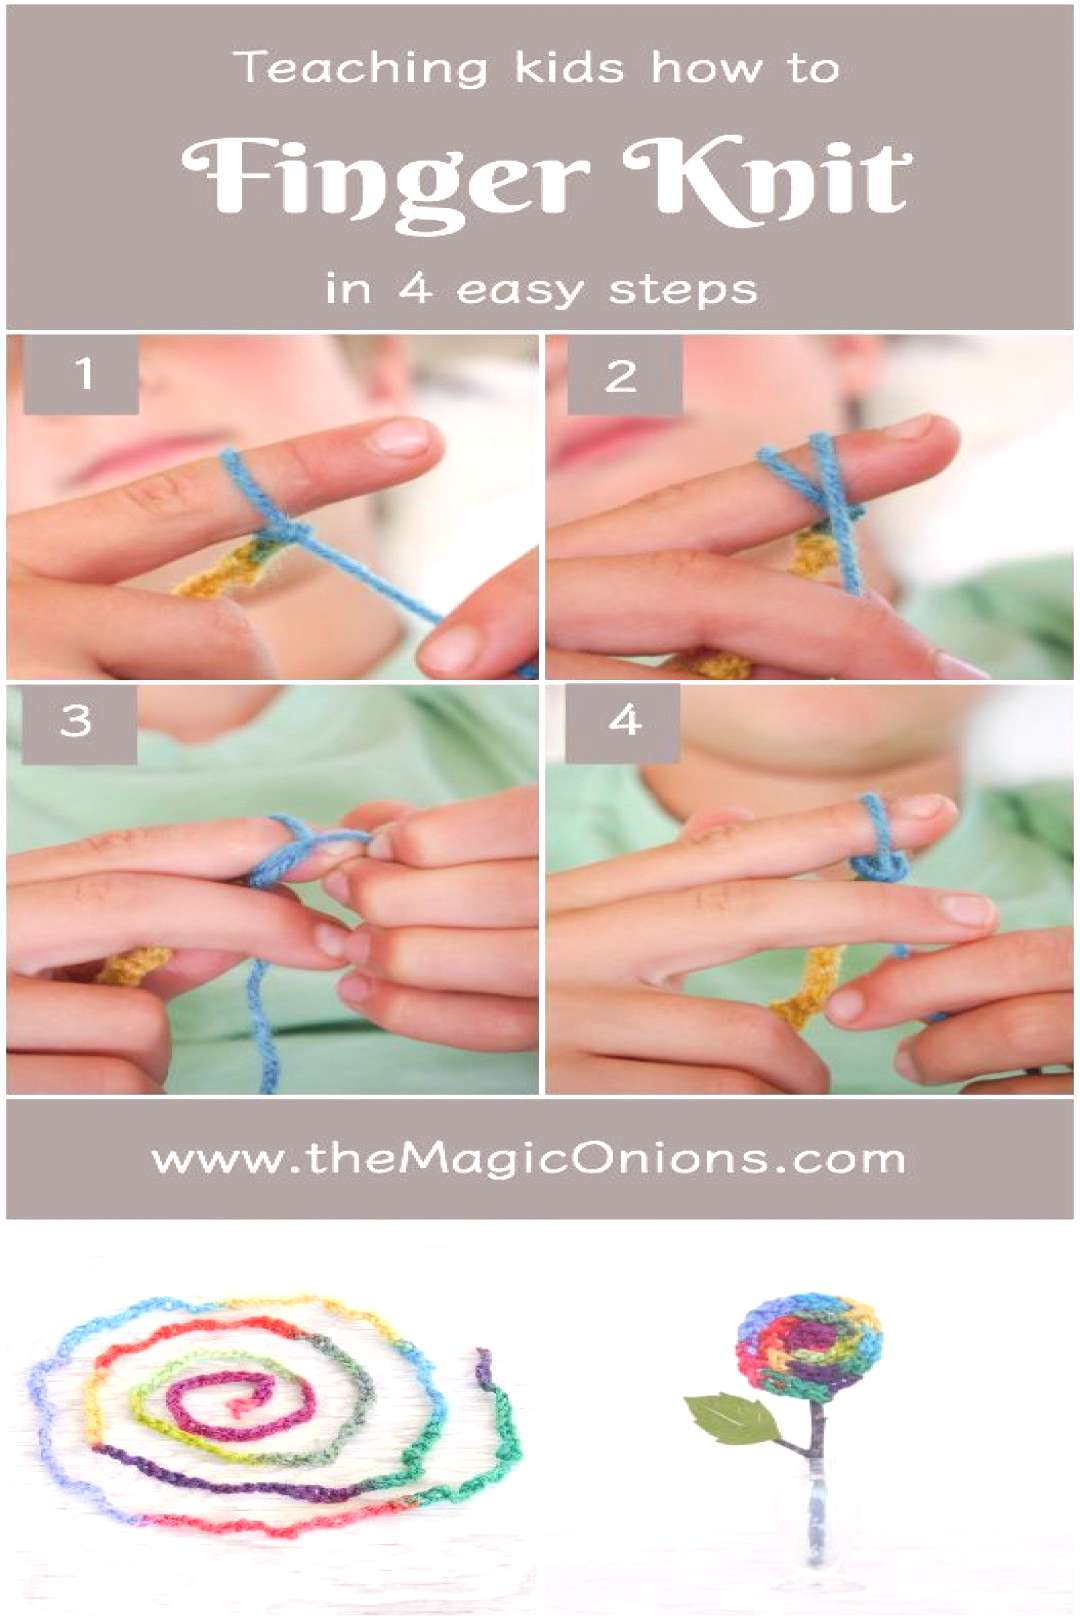 Finger Knitting For Kids An Easy DIY Tutorial - The Magic Onions - -